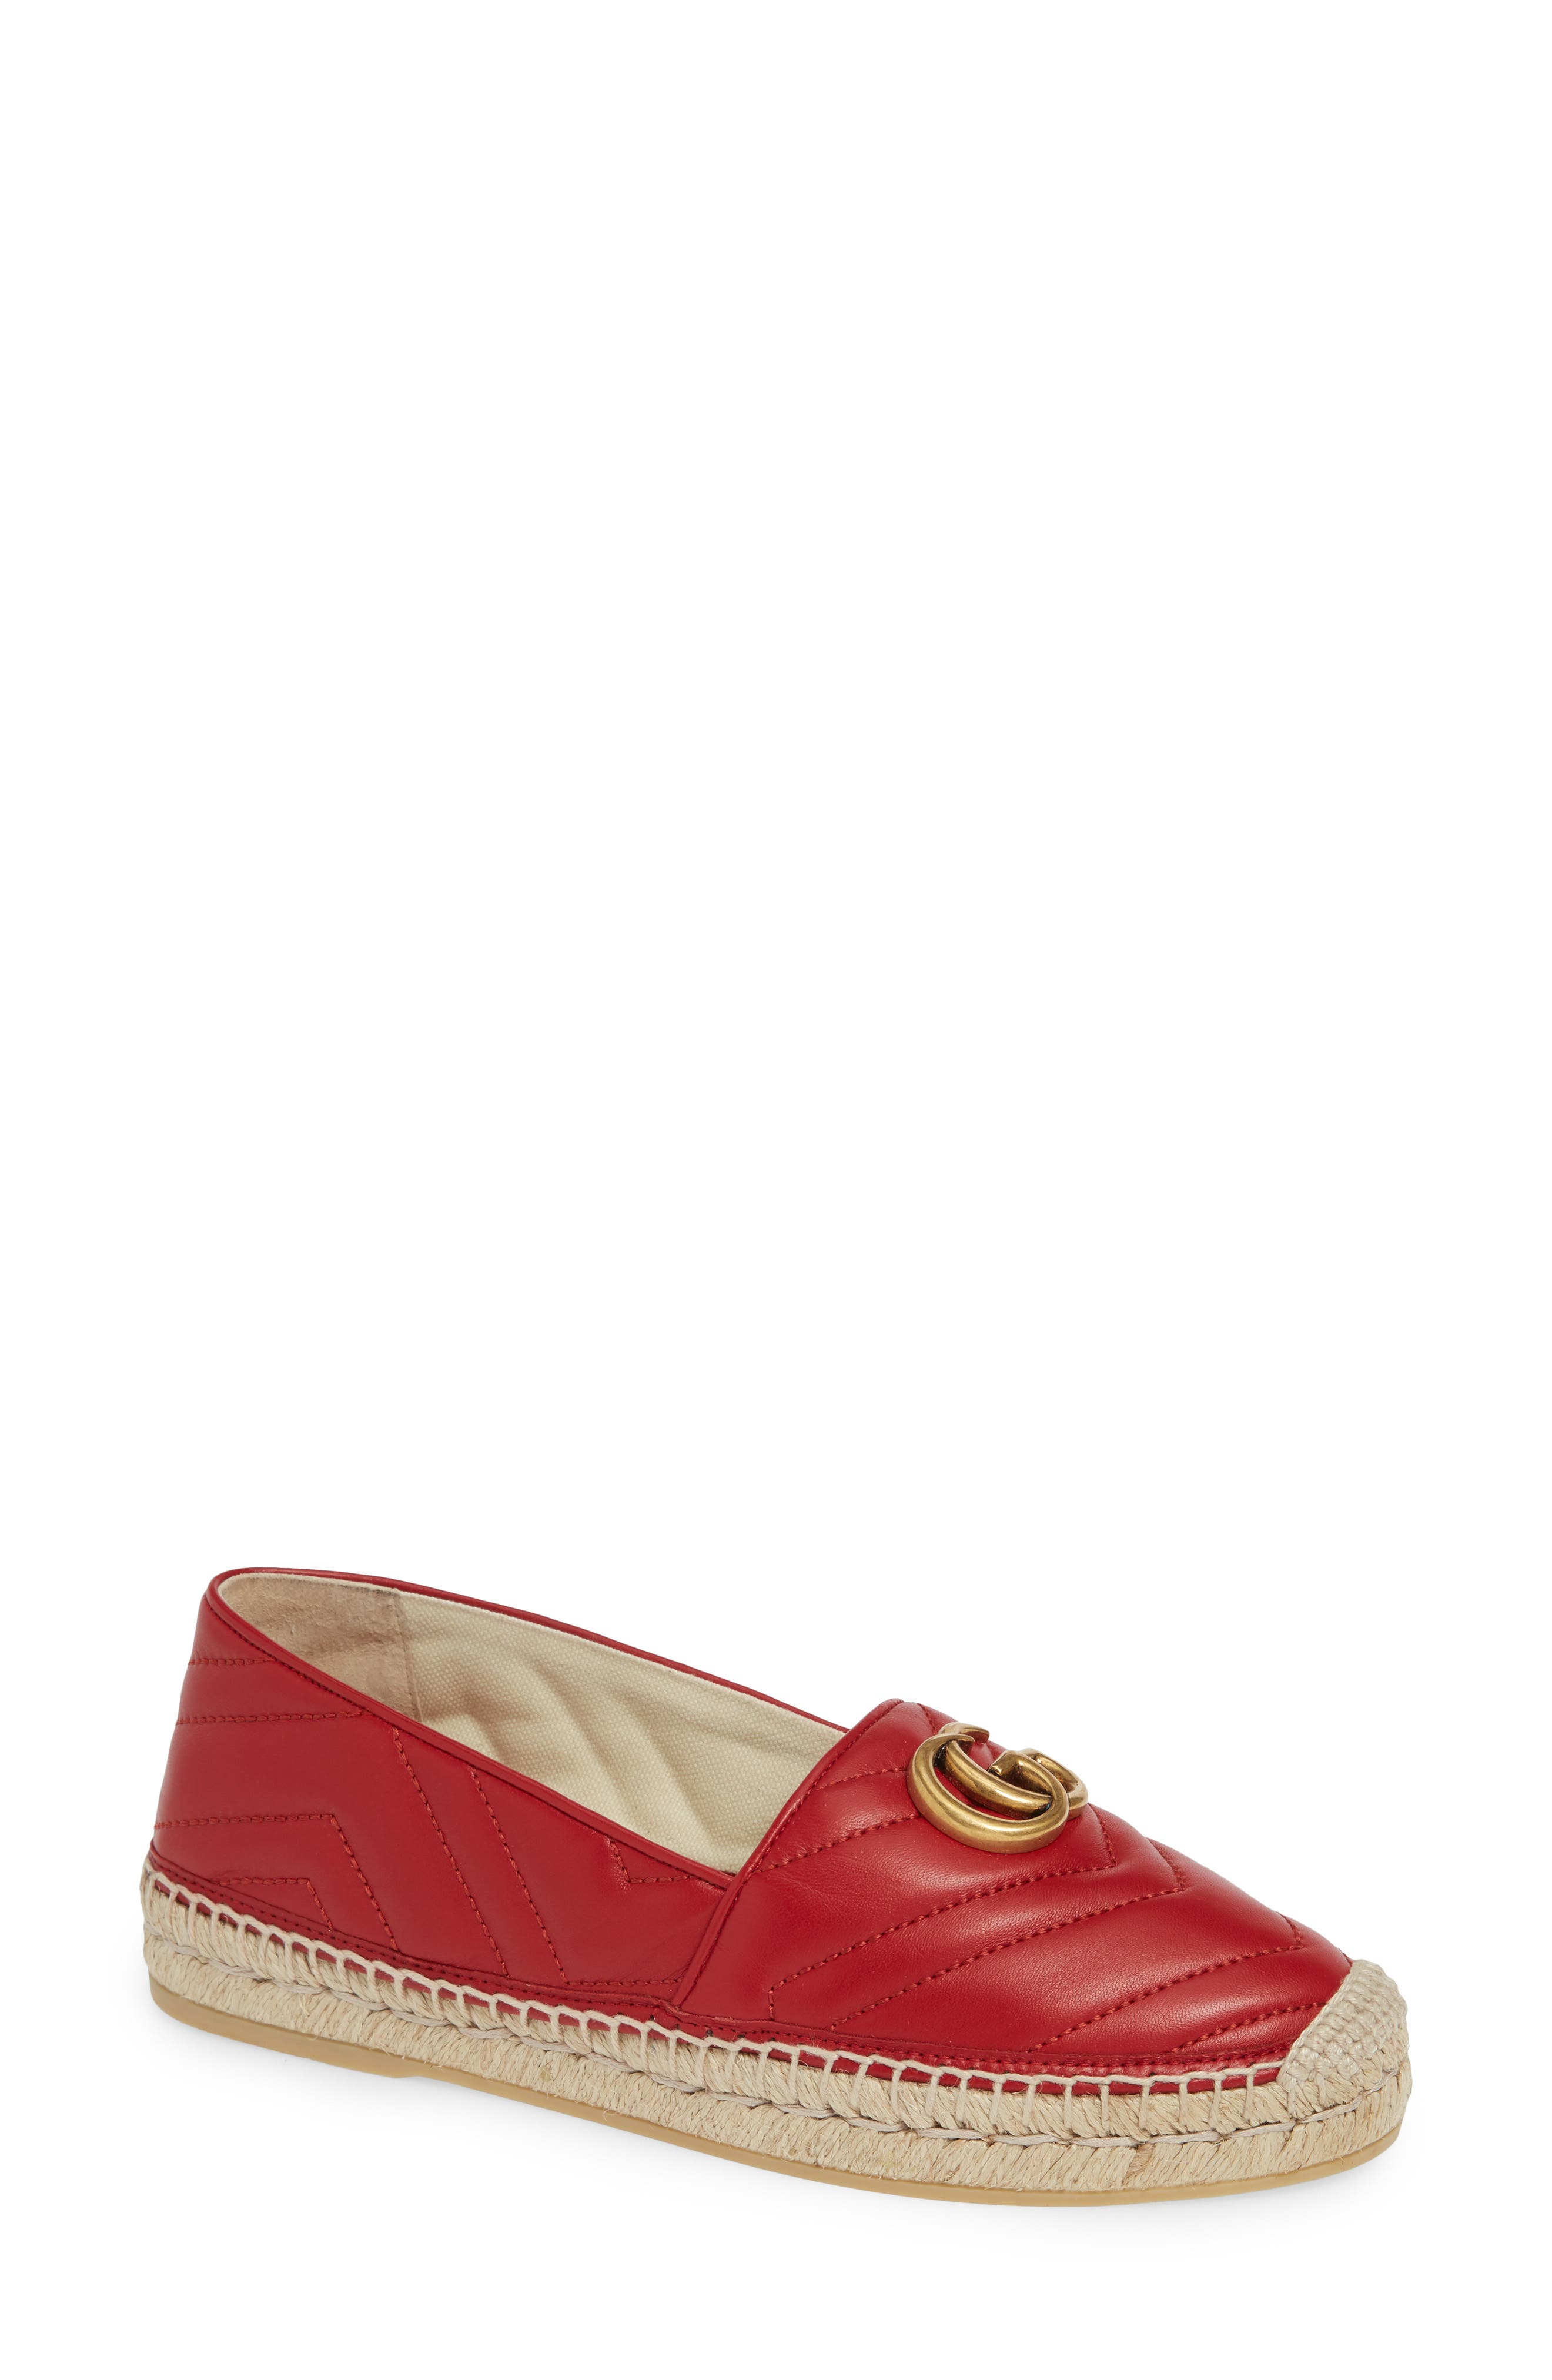 GUCCI, Pilar Chevron Flat Espadrille, Main thumbnail 1, color, HIBISCUS RED LEATHER